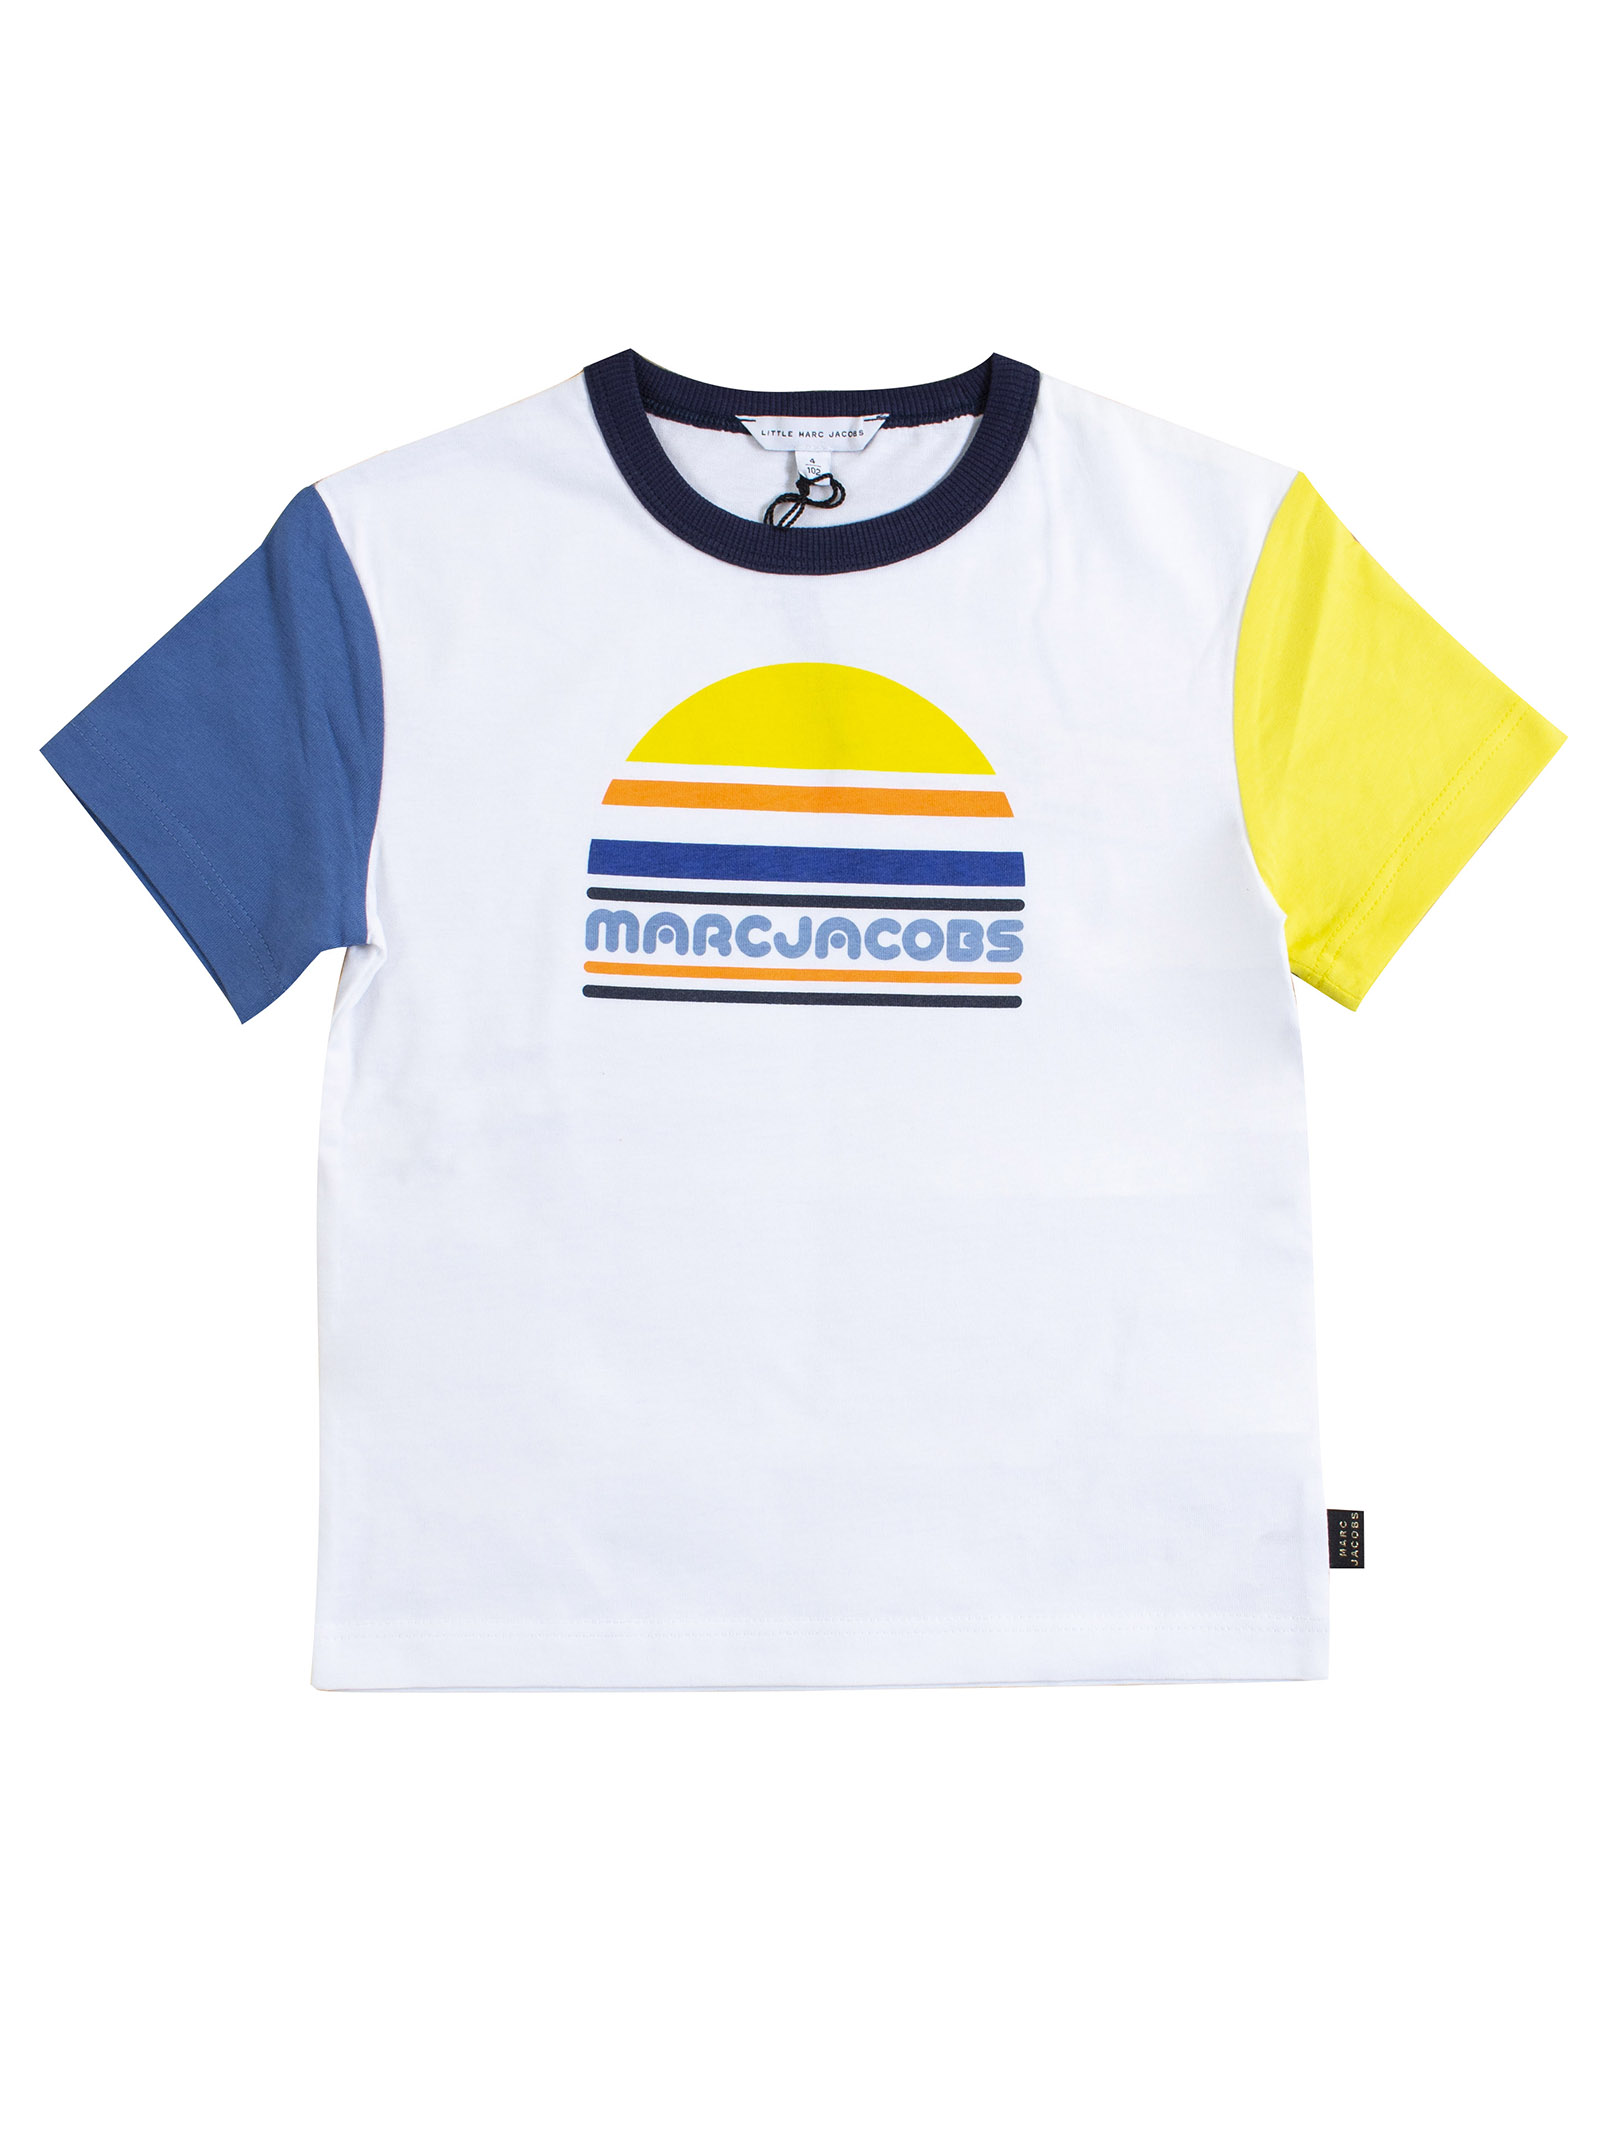 984cdea60 HOME / CATEGORIES / CLOTHING / T-SHIRT / KIDS T-SHIRT WITH PRINT /